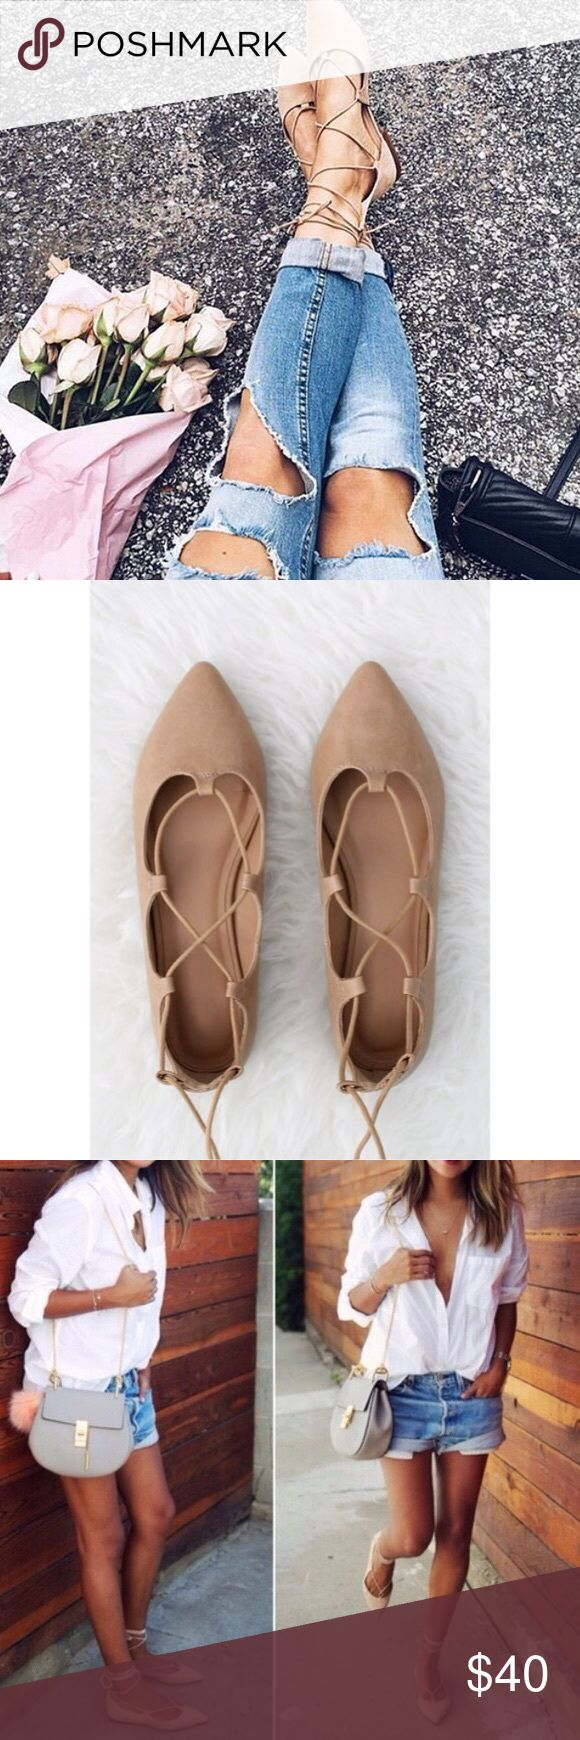 💕Lace Up Ballet Flats💕 Brand new in box - Camel pointed toe, Laceup ballet flats, faux leather, size 7. No Trades, Price Firm. Shoes Flats & Loafers